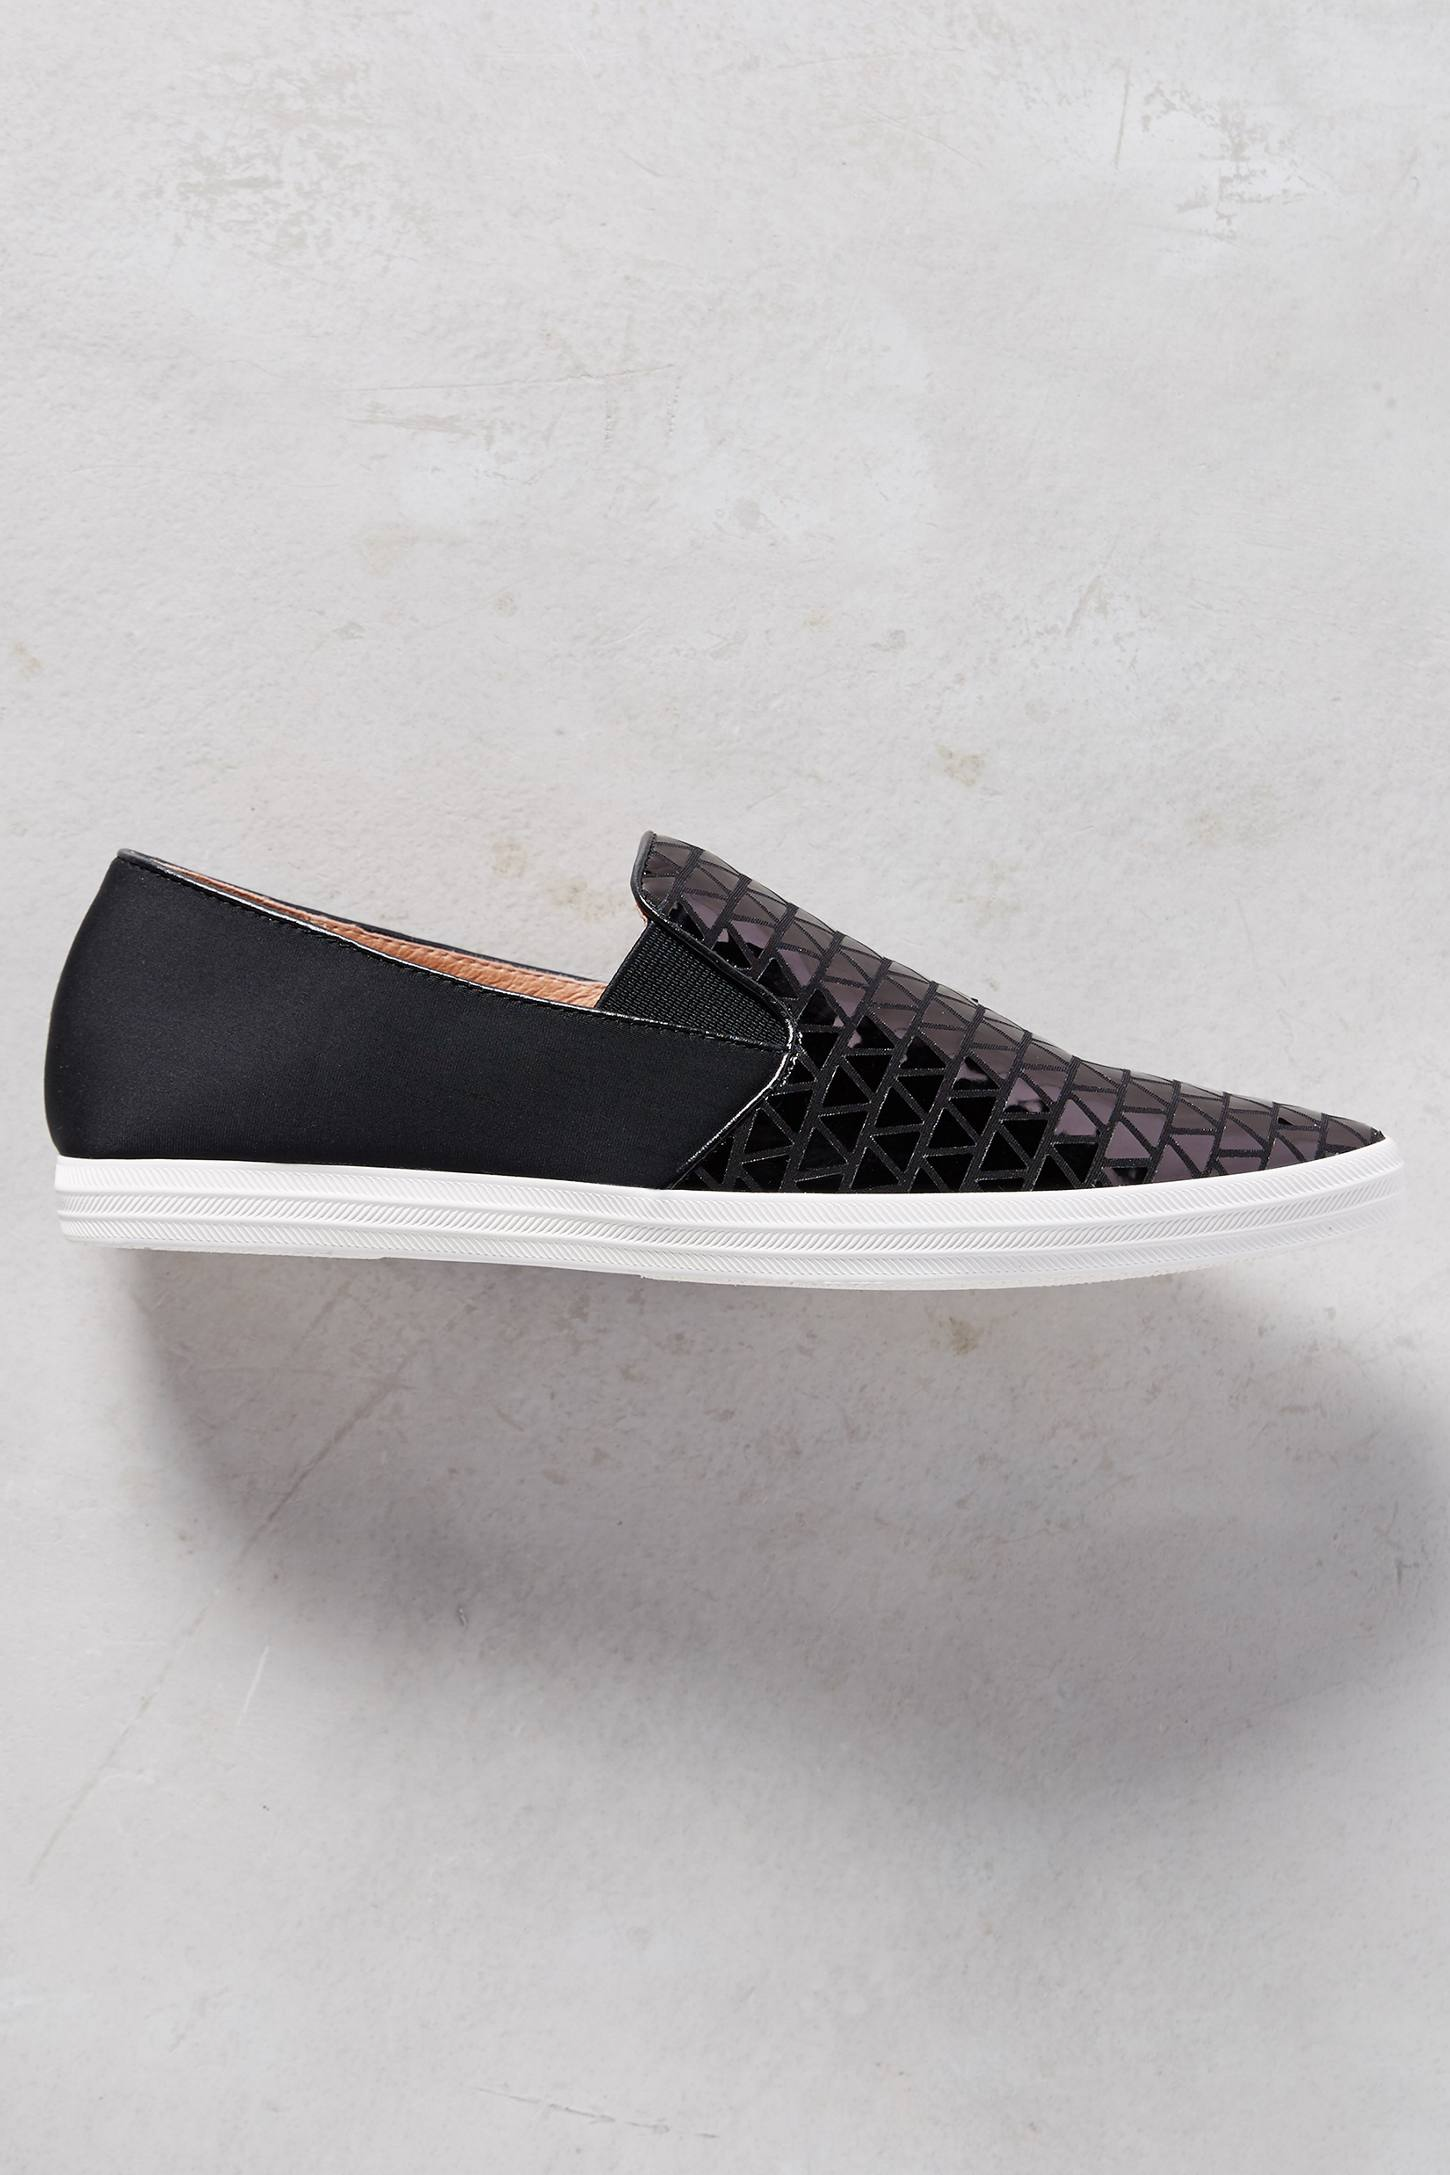 All Black Scales Sneakers